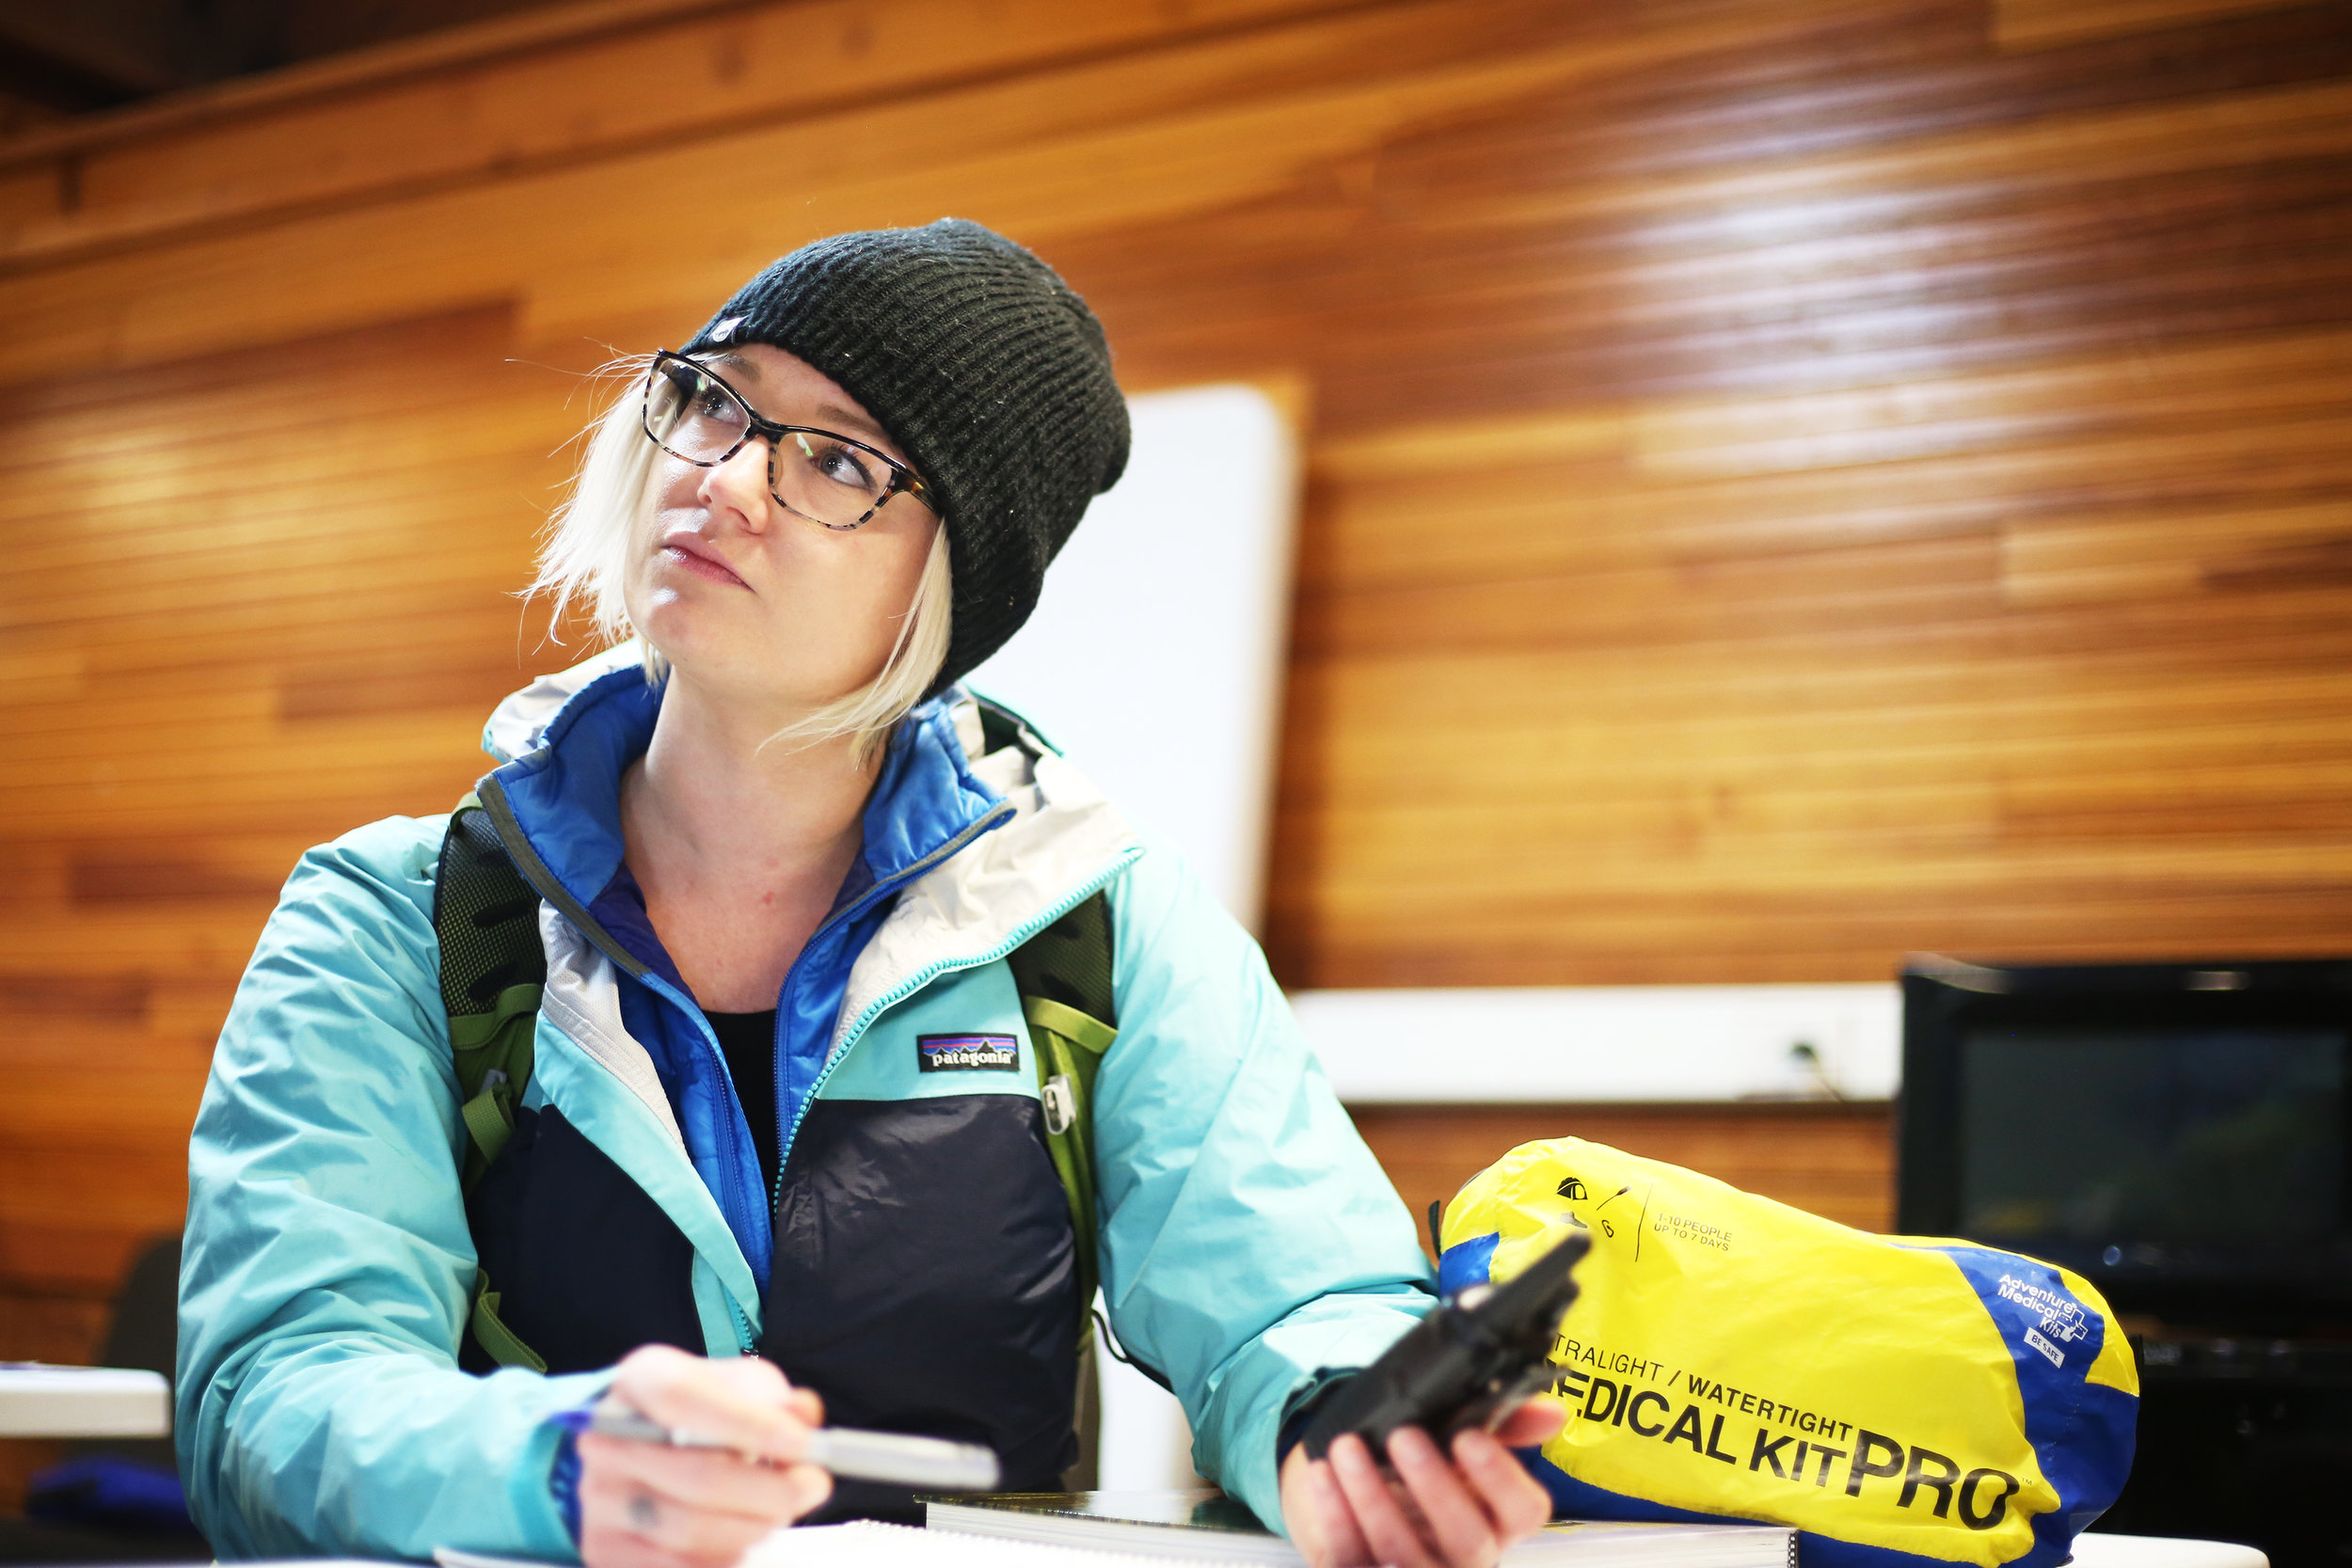 Set.  Sara, acting as the Assistant Incident Commander, takes notes and waits for the distress call over the radio.